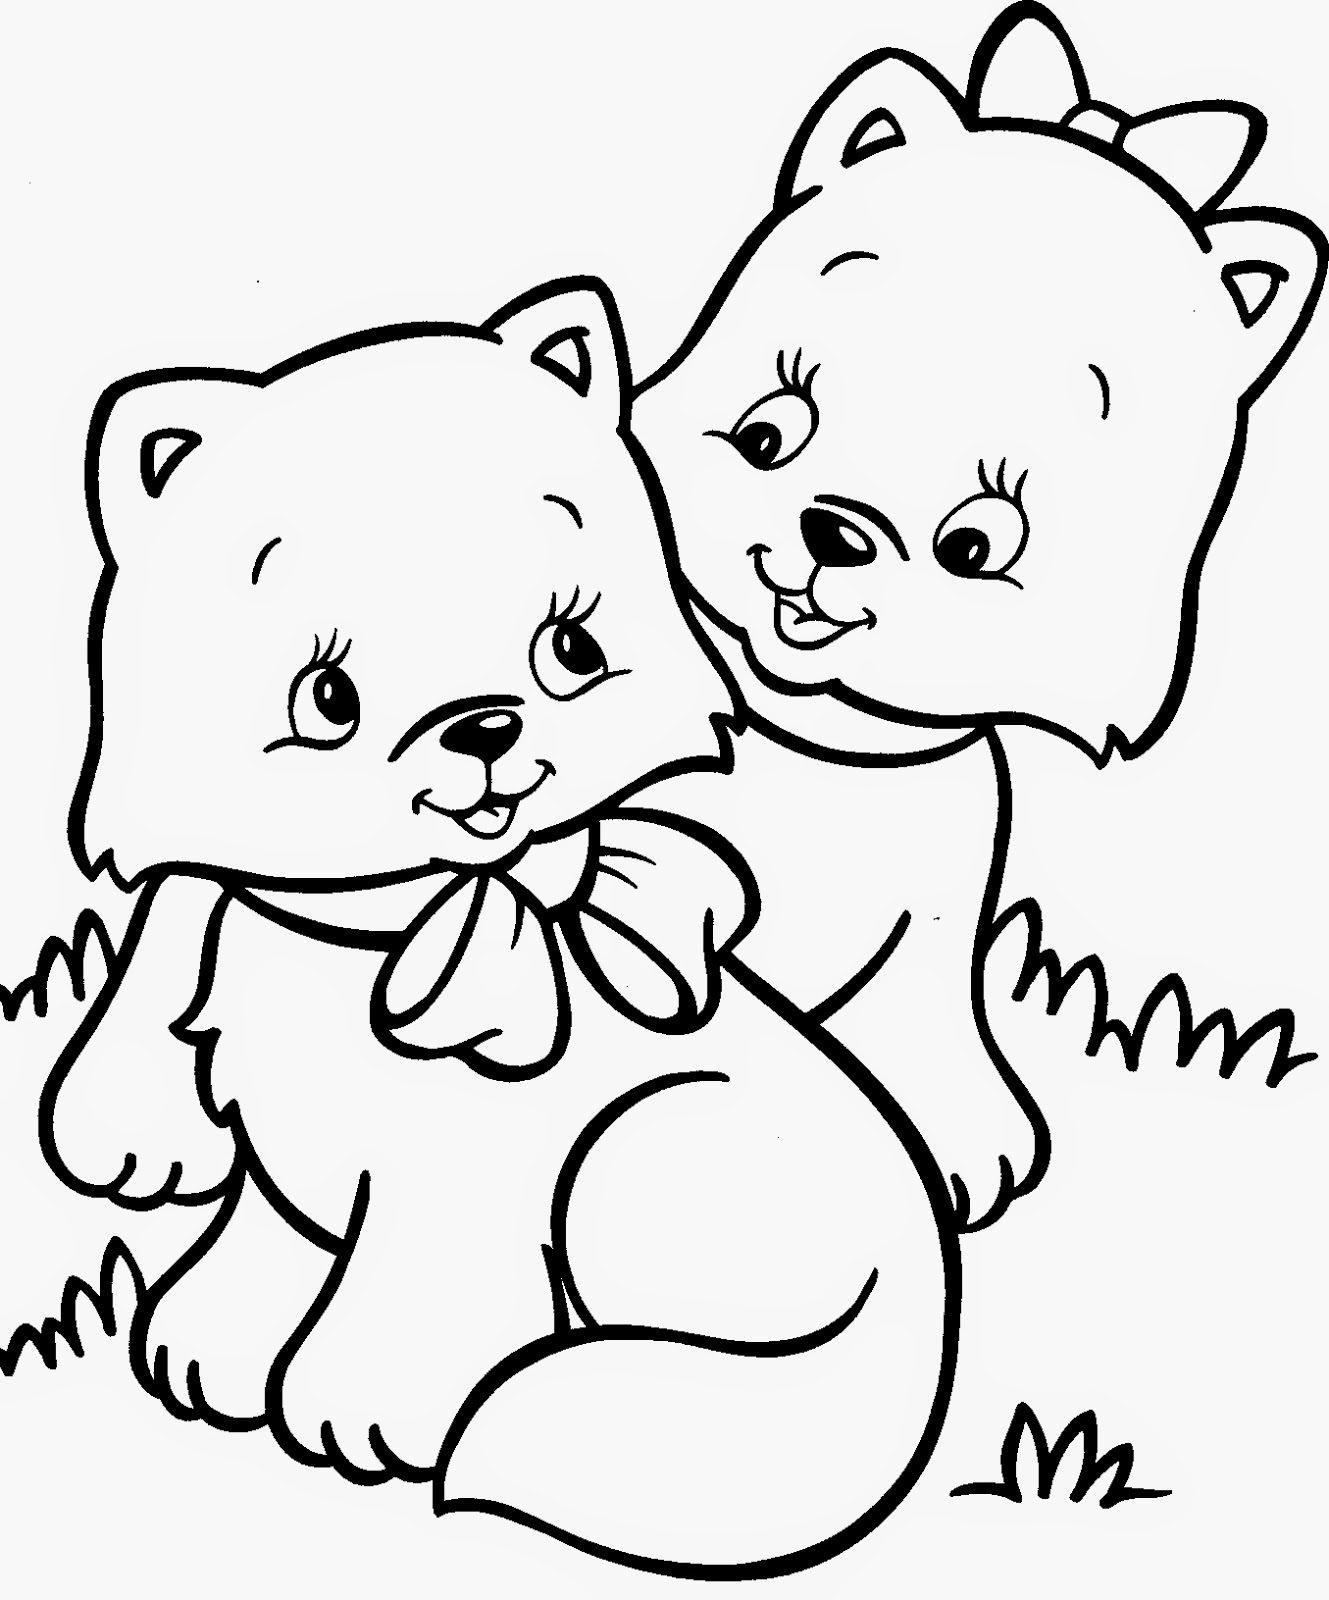 cute cat colouring pages cute baby cats coloring pages animal pictures colouring pages cute cat